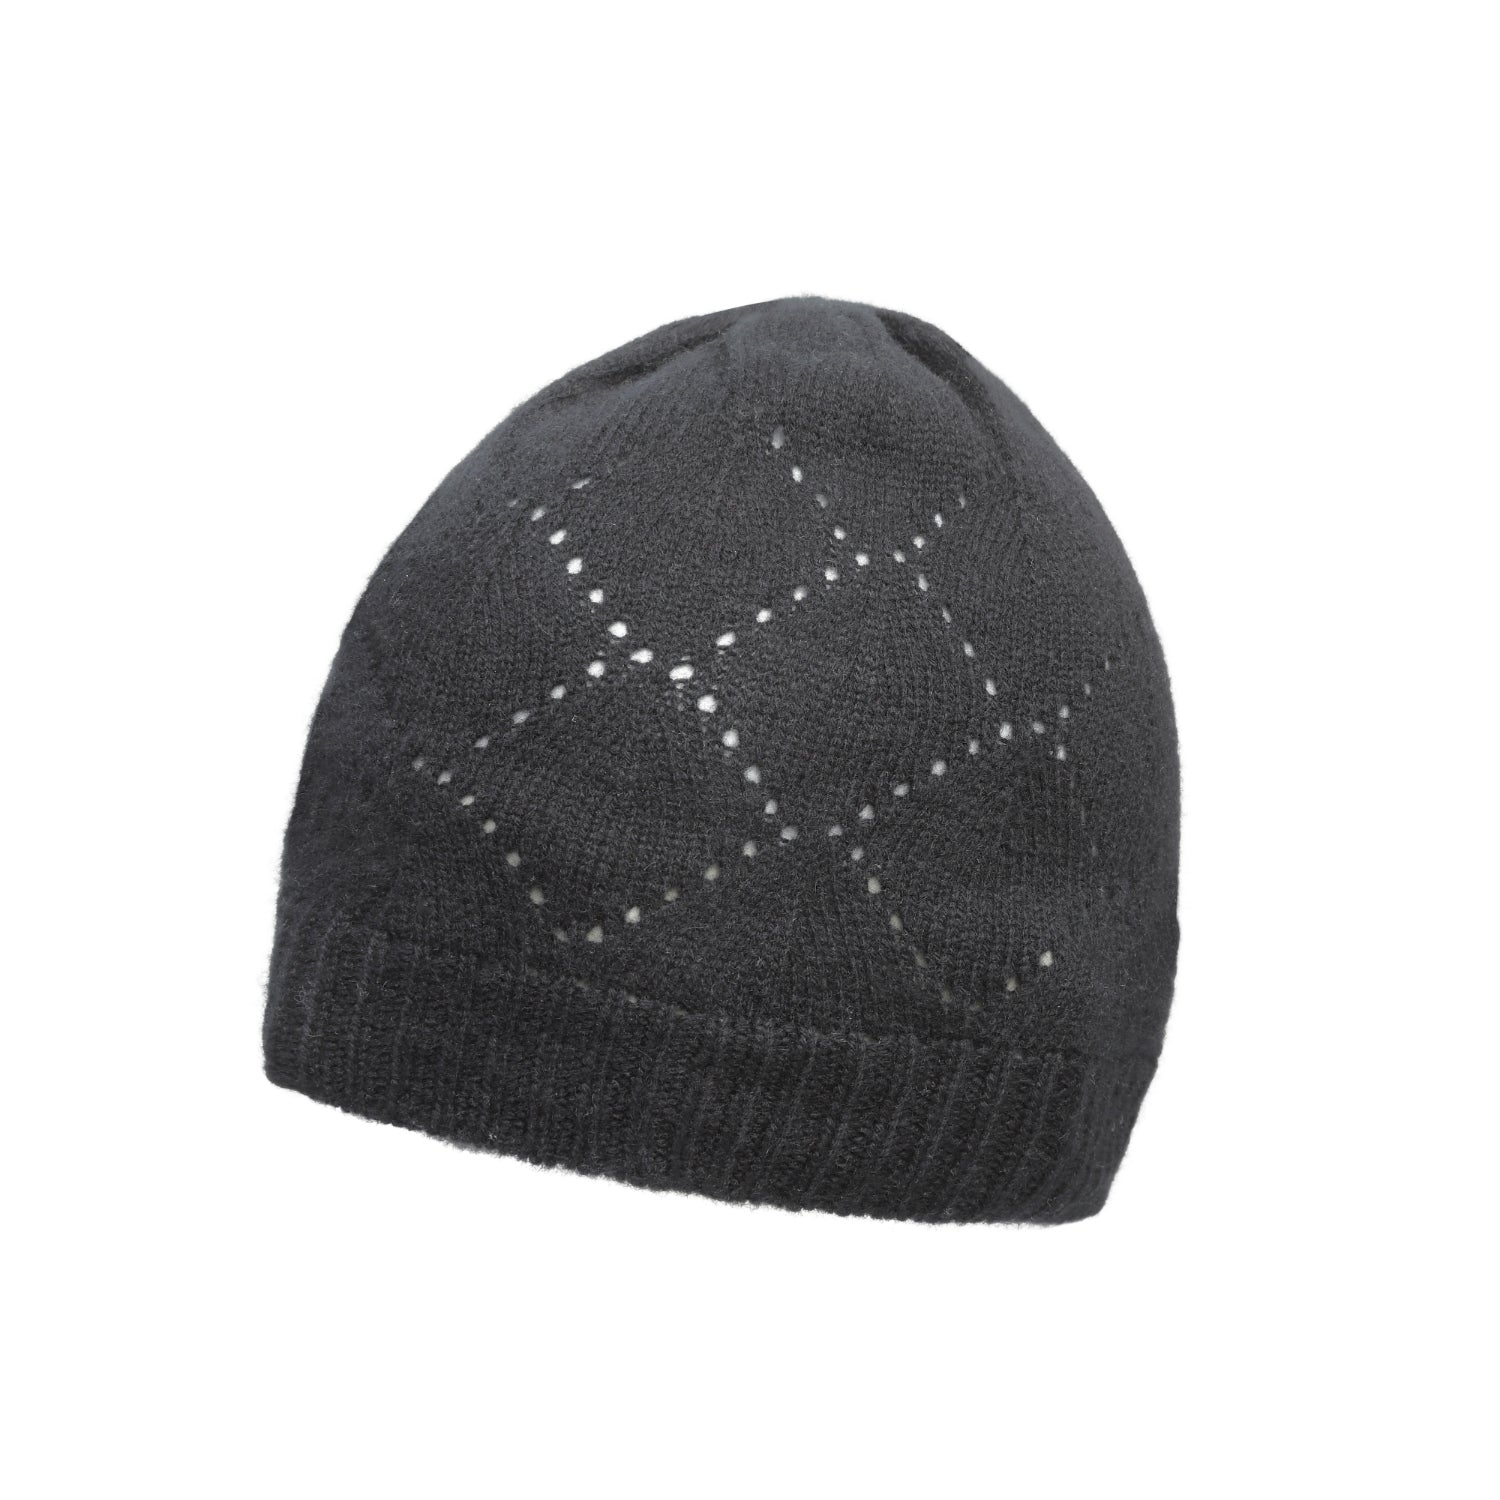 Johnstons Cashmere - Pointelle Knit - Pure Cashmere Beanie - The ... 978a2dc99752